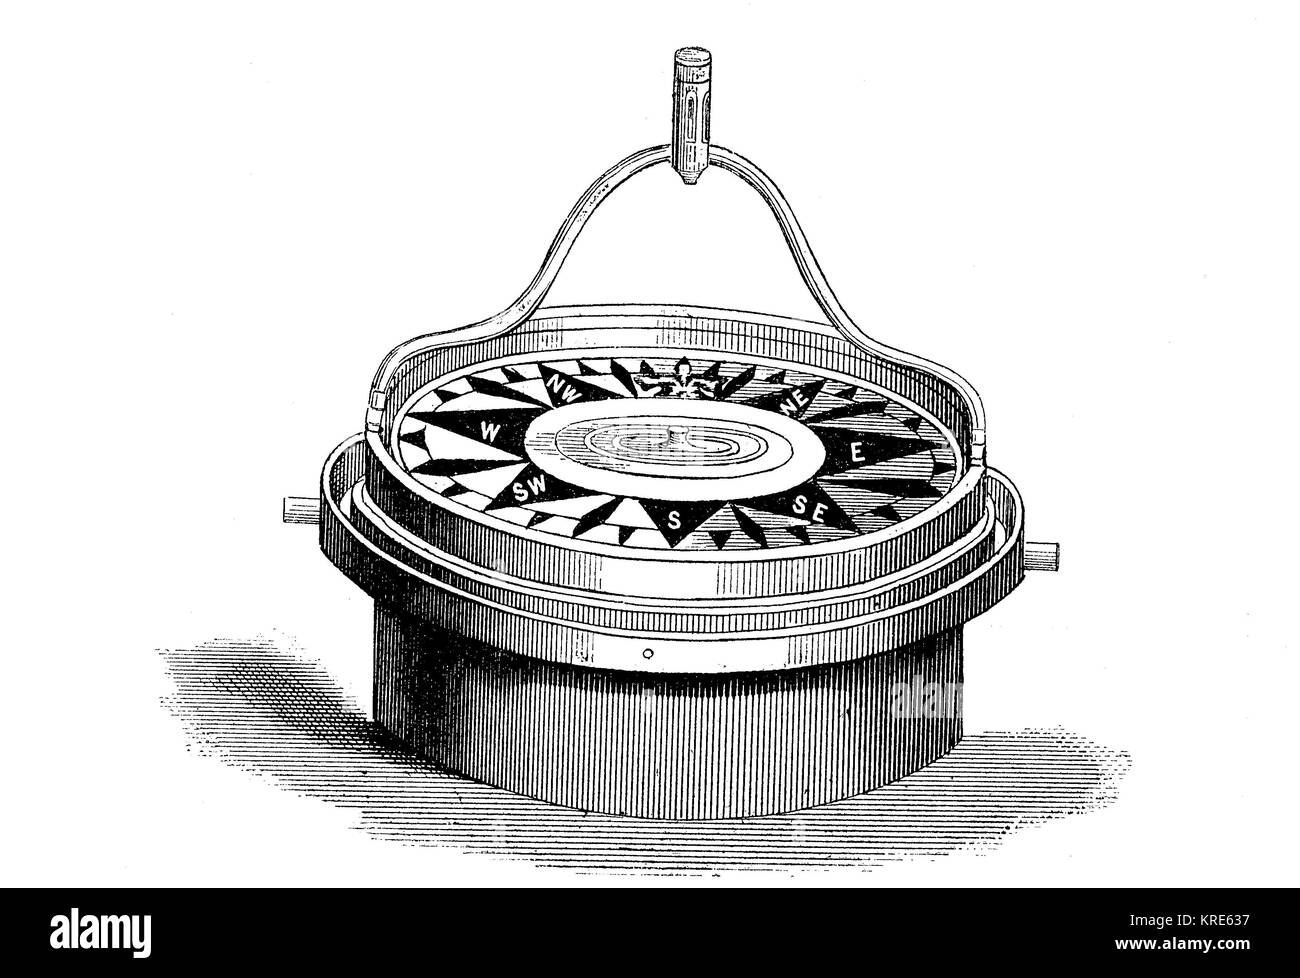 The improved floating compass for screw steamer by James Rahill, digital improved reproduction of a woodcut from Stock Photo